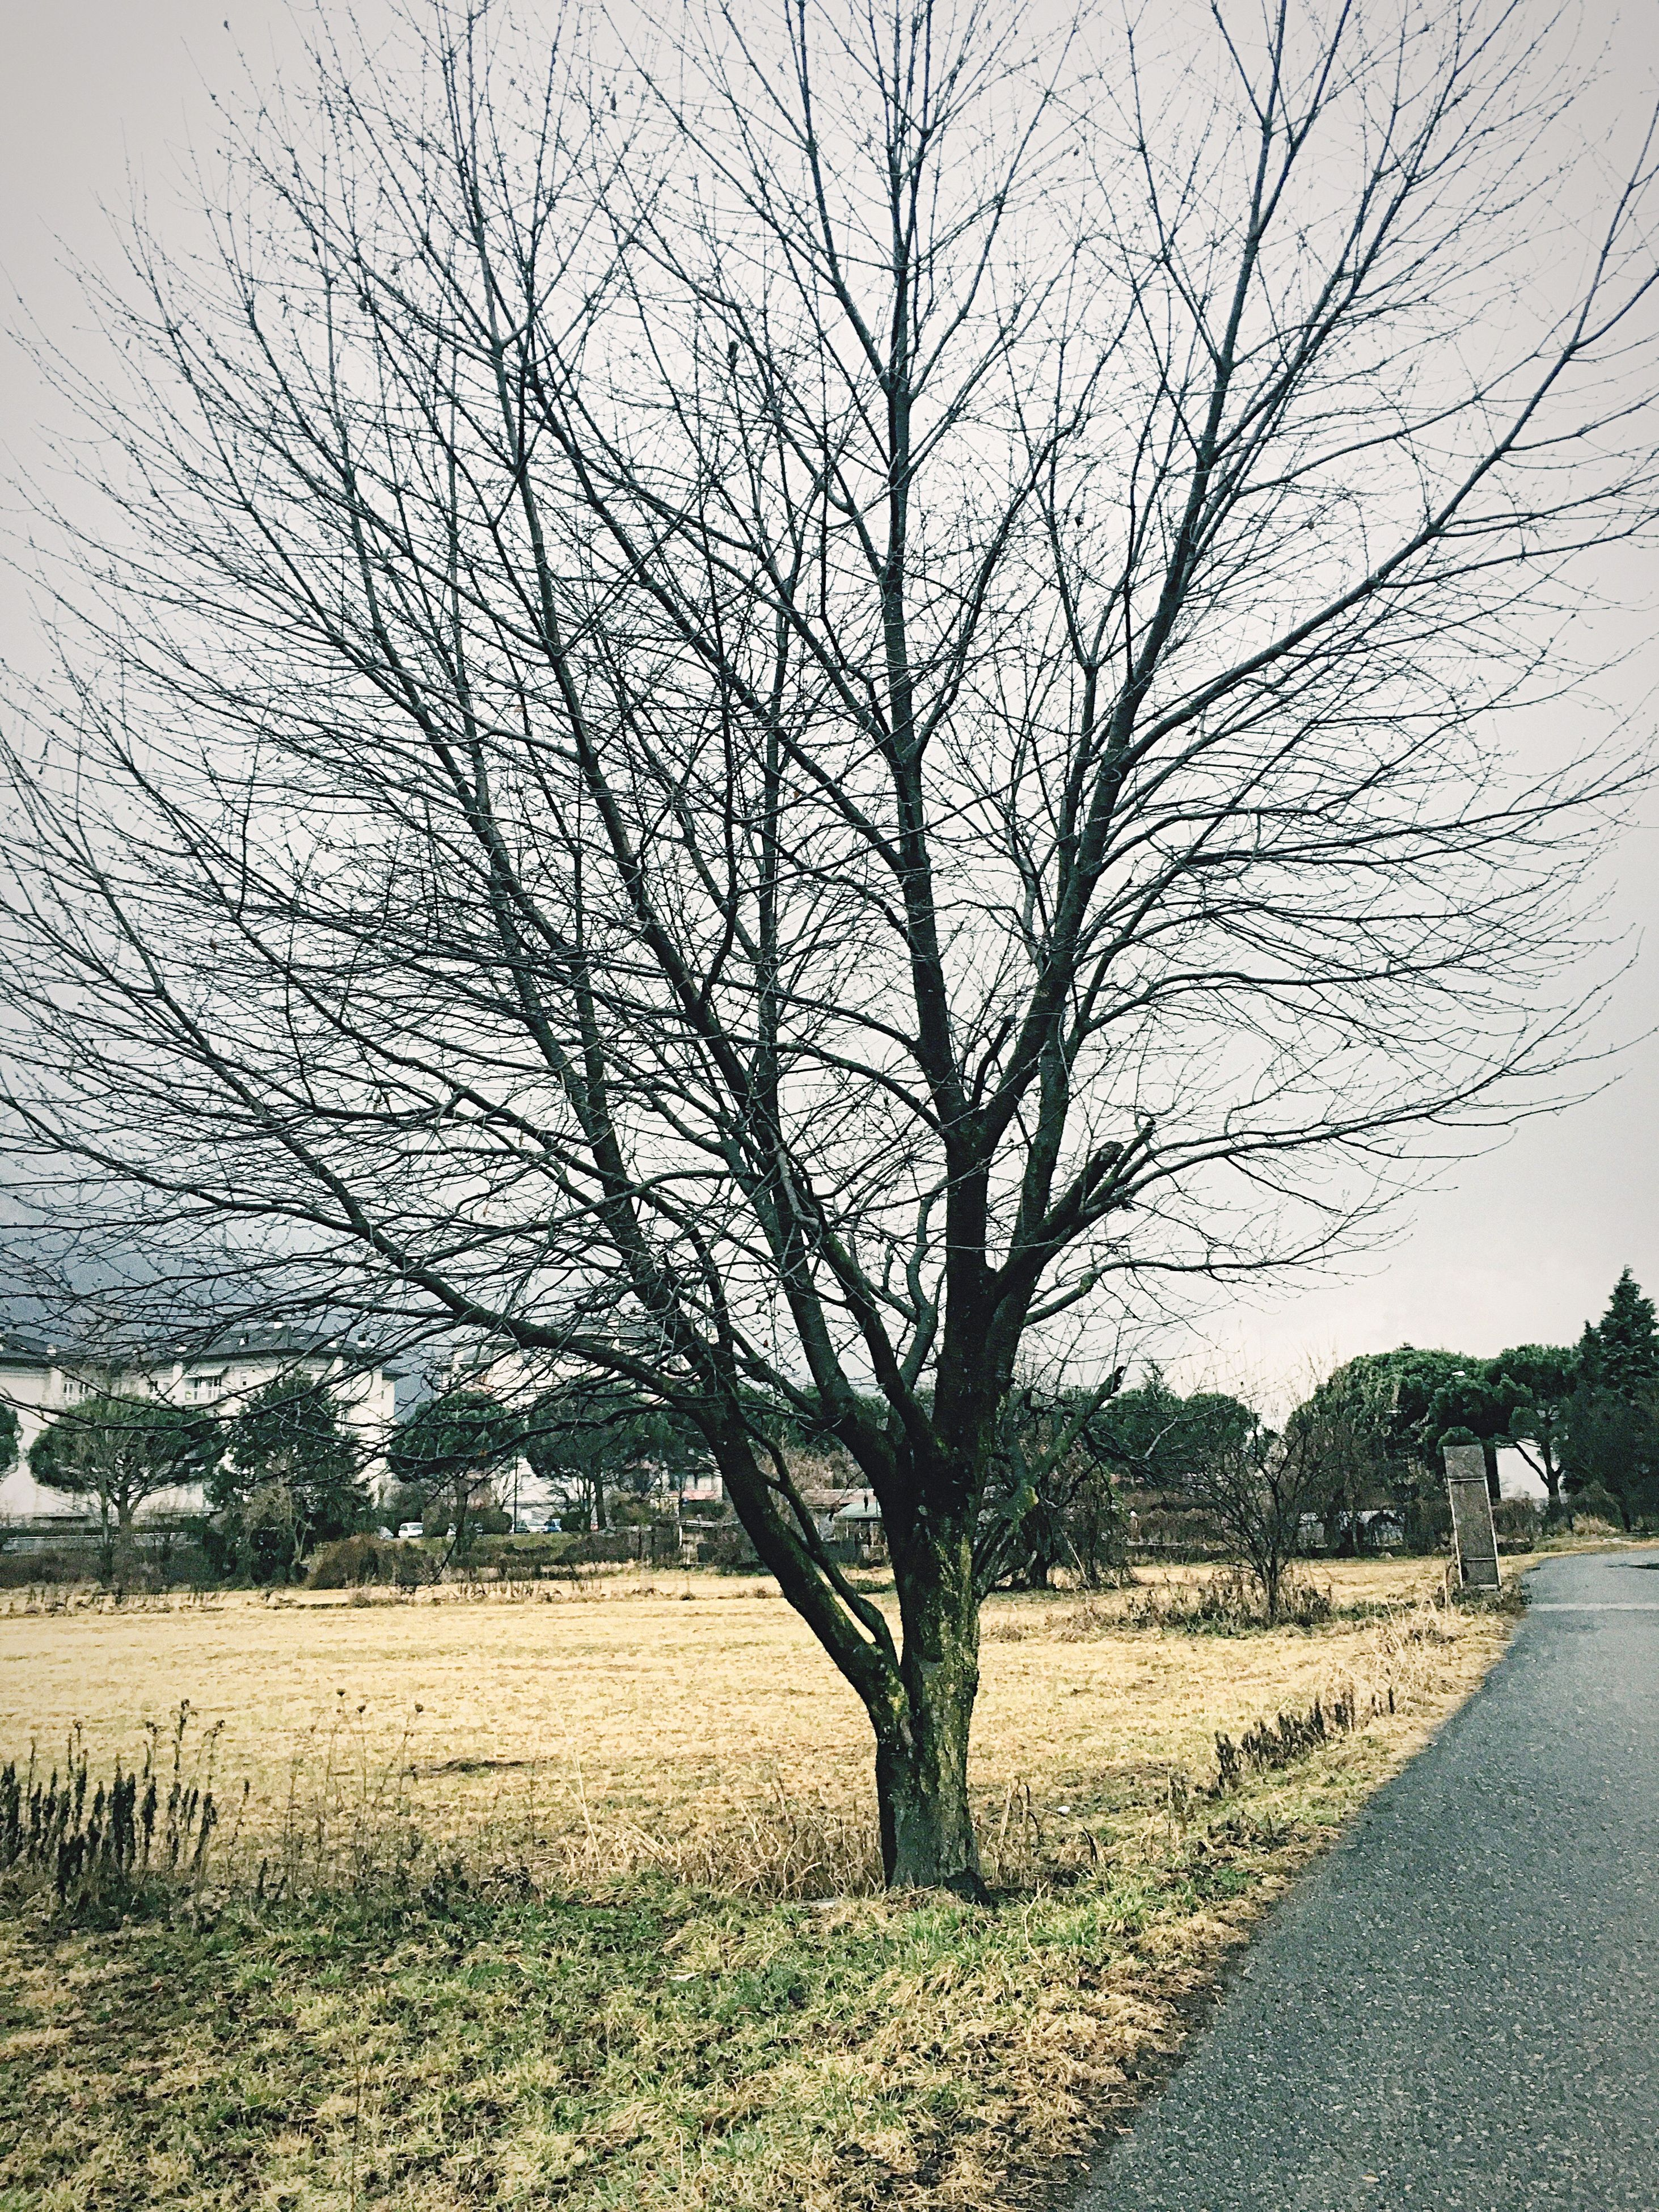 bare tree, tree, branch, tranquility, tranquil scene, field, road, nature, landscape, scenics, transportation, sky, tree trunk, beauty in nature, the way forward, grass, growth, day, outdoors, no people